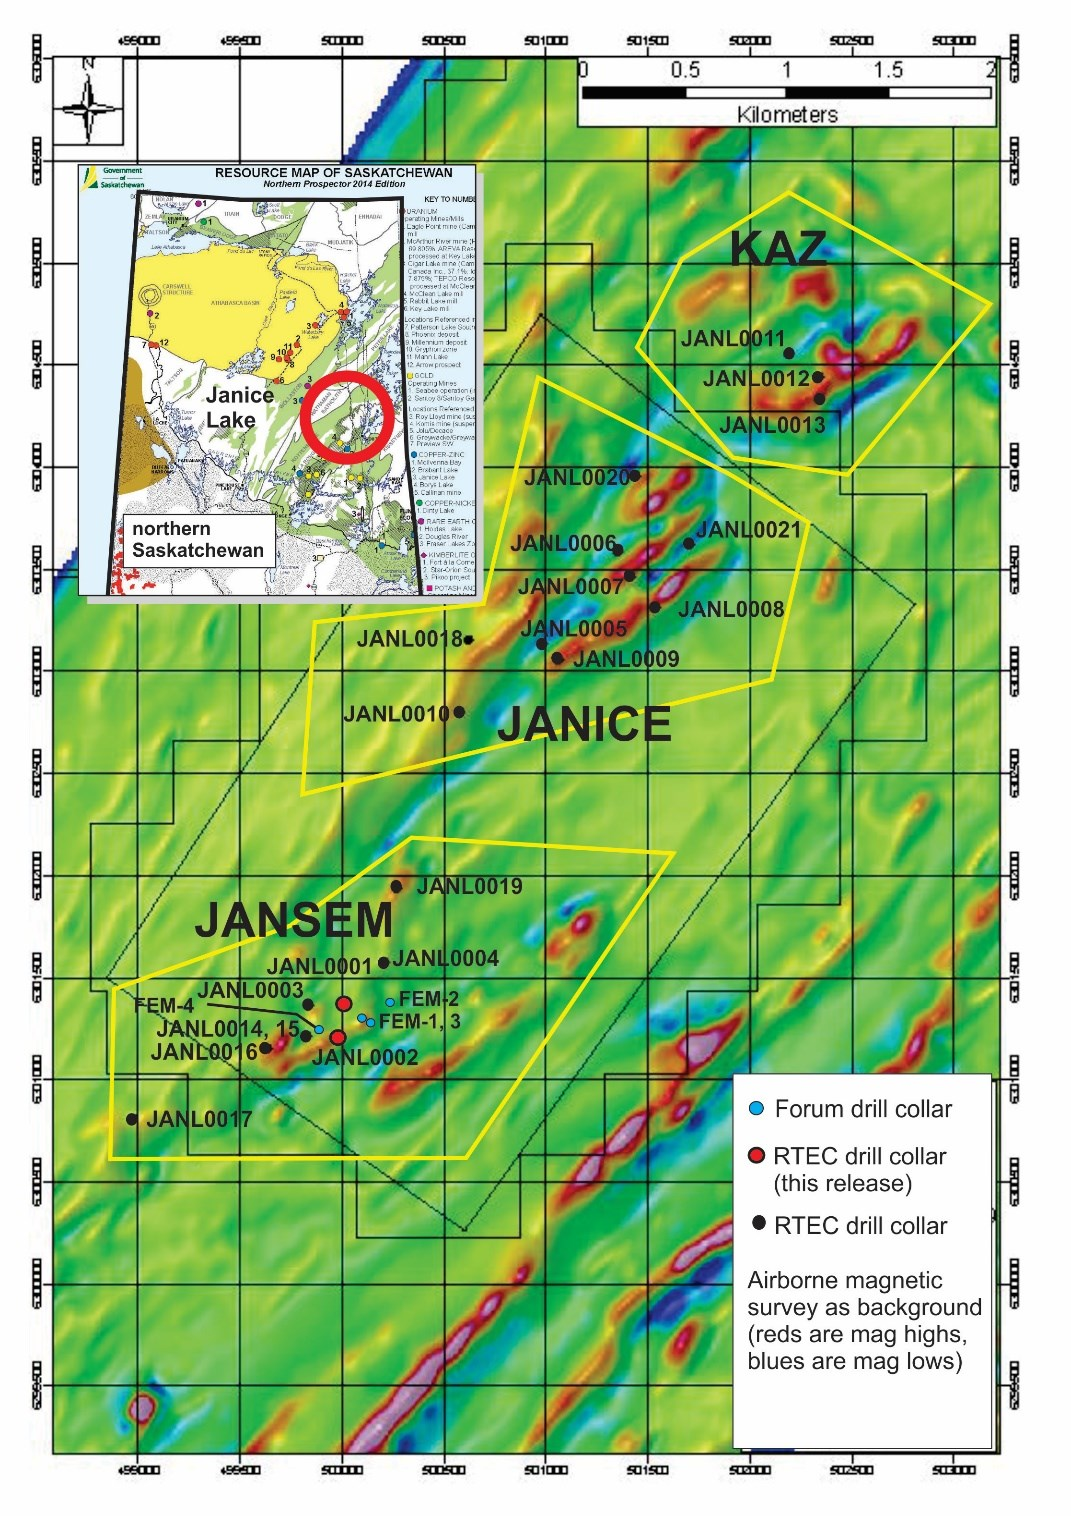 Rio Tinto Reports Positive Drill Results from Forum's Janice Lake Copper/Silver Project | Seeking Alpha